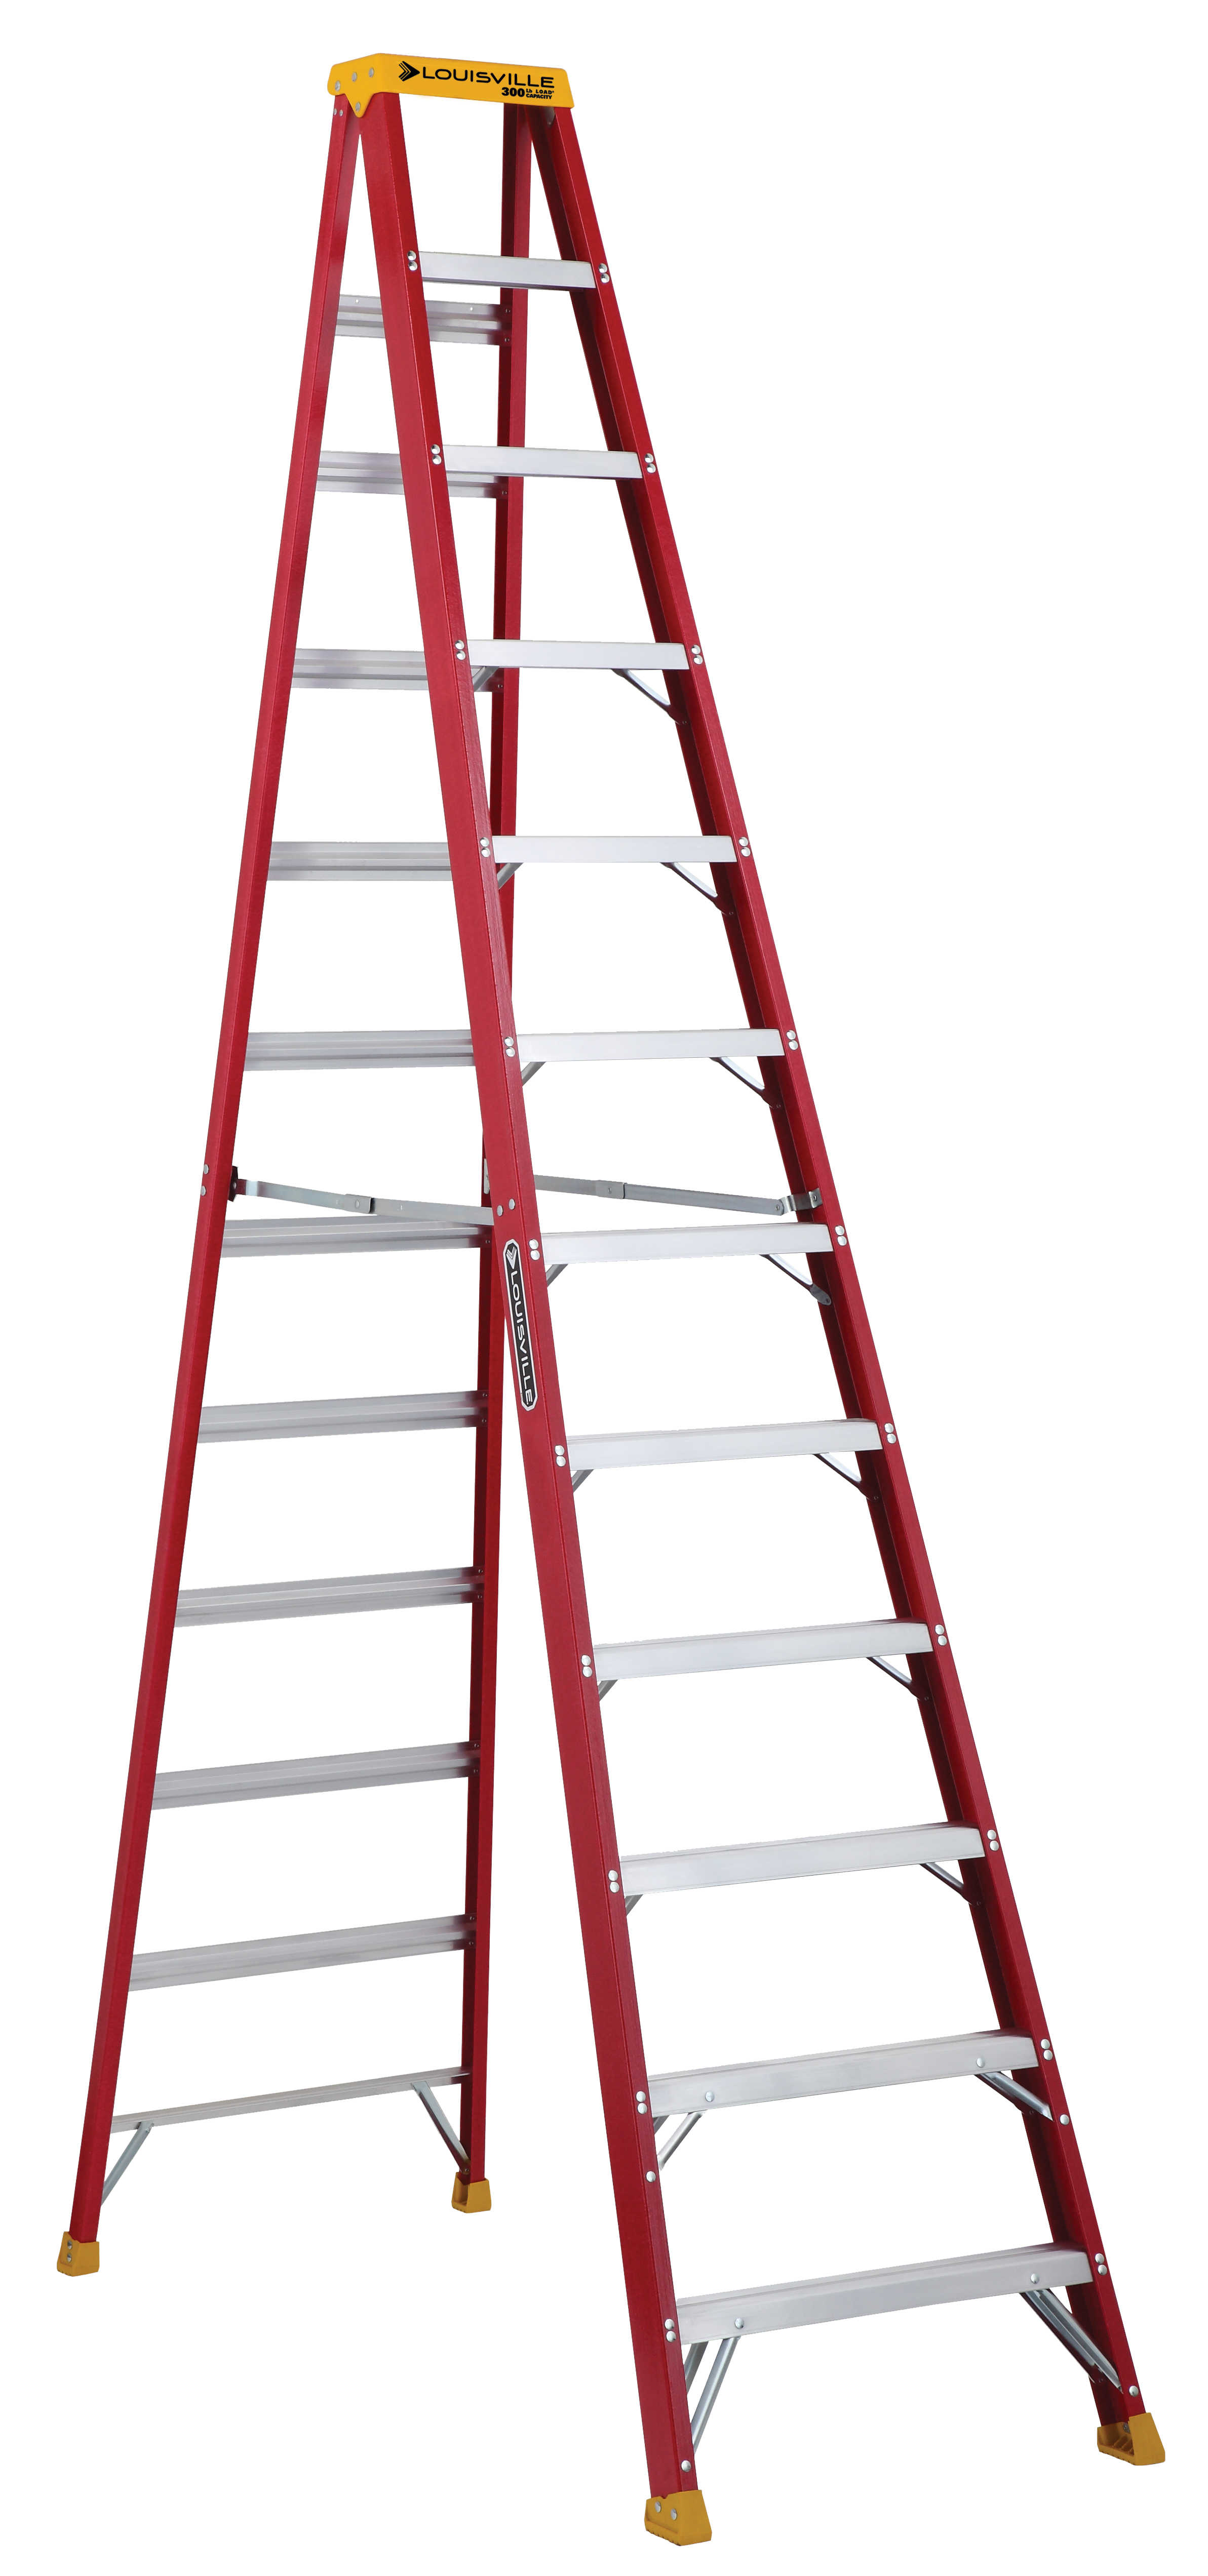 Louisville Ladder L-3016-12 12 ft. Fiberglass Step Ladder, Type IA, 300 lbs. Load Capacity